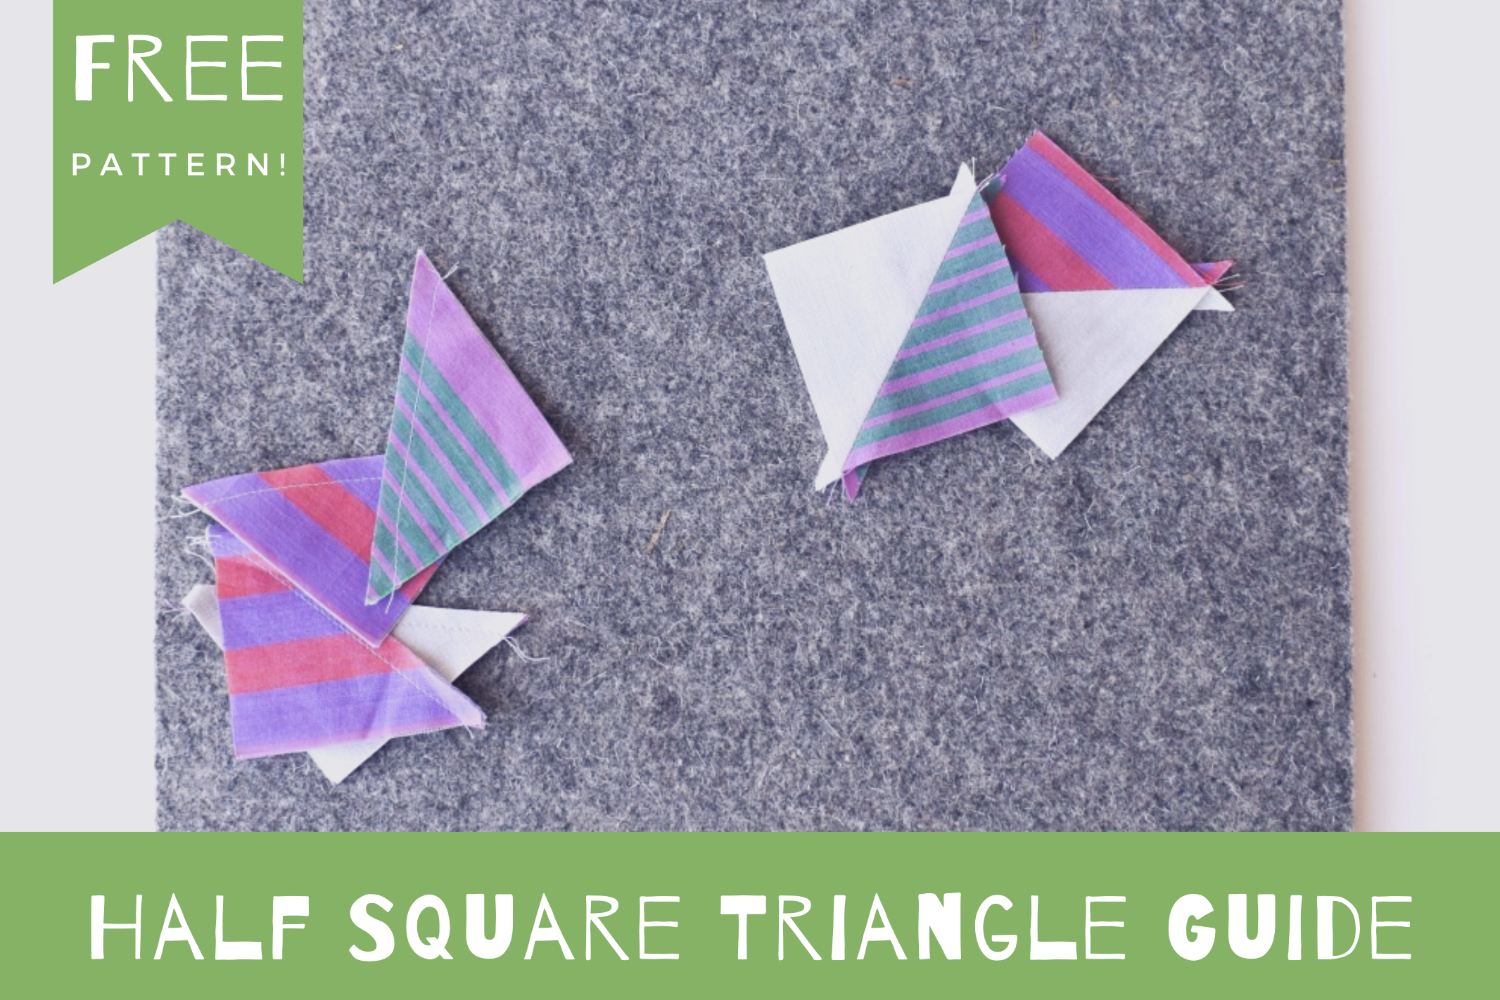 Half Square Triangle Guide + Free Pattern!